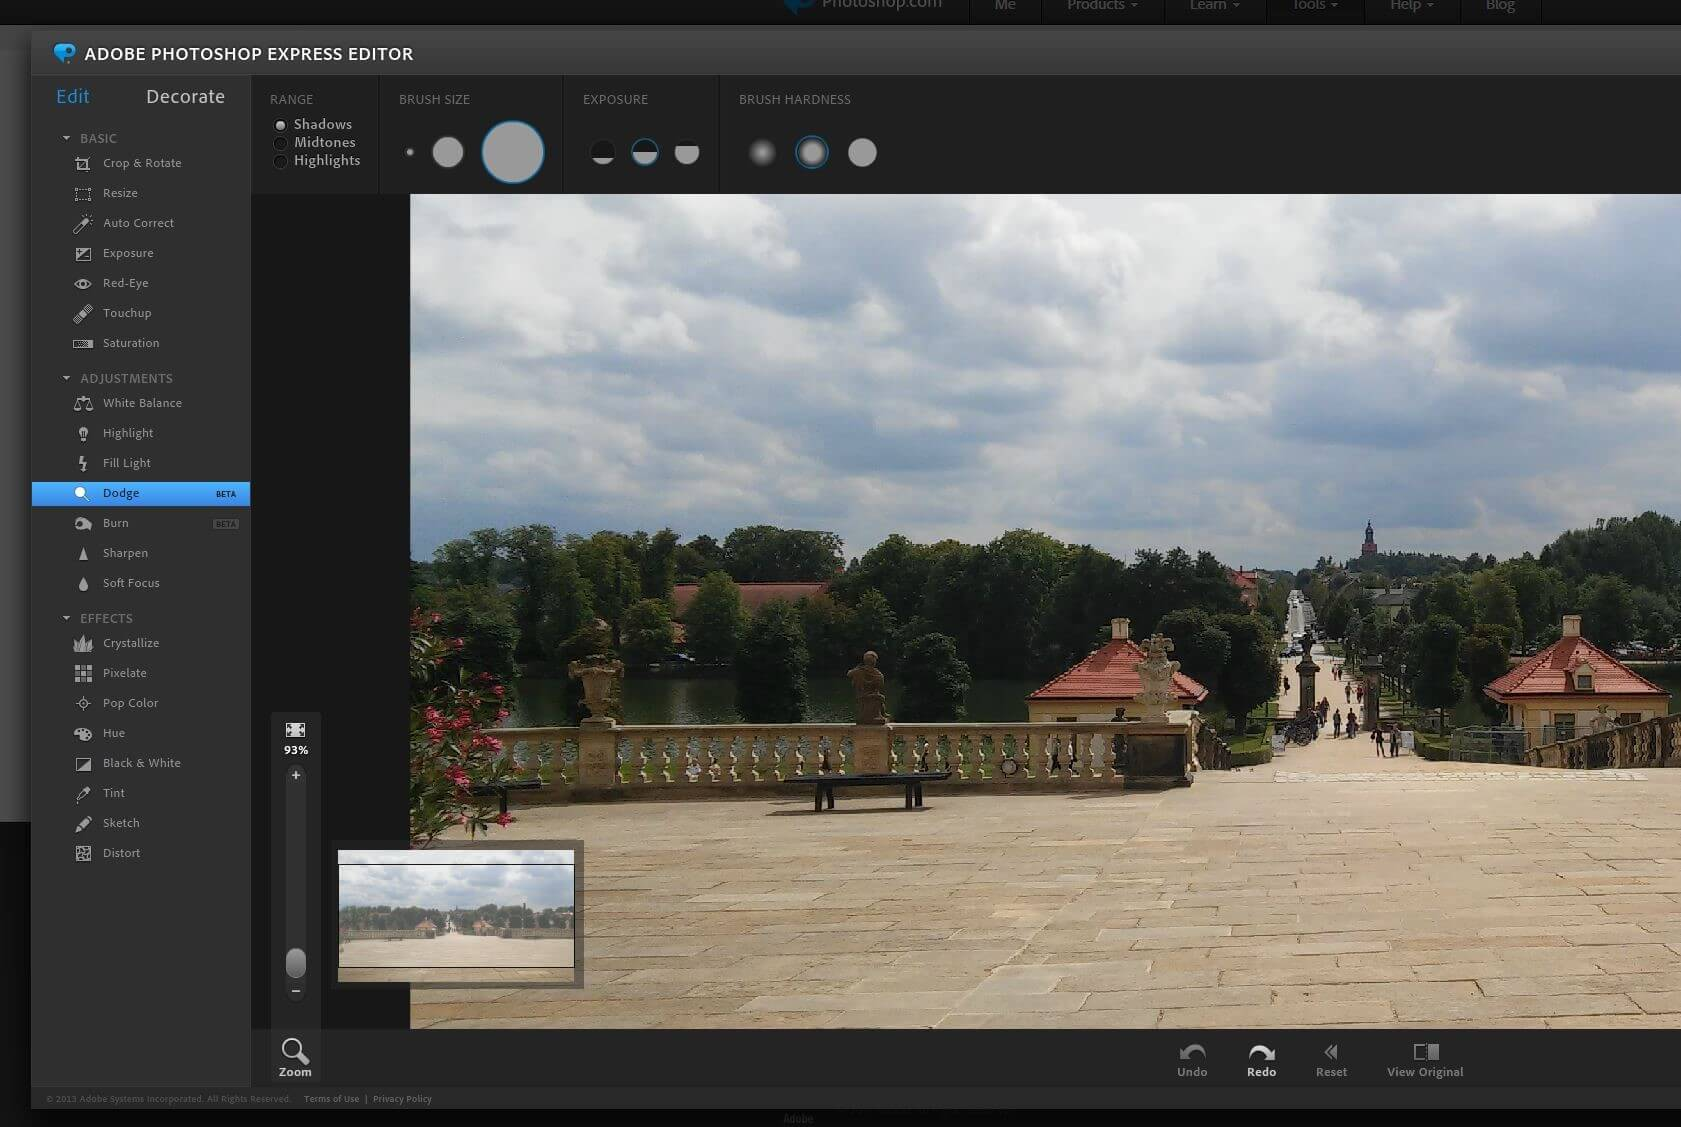 Browserversion des Photoshop Express Editor